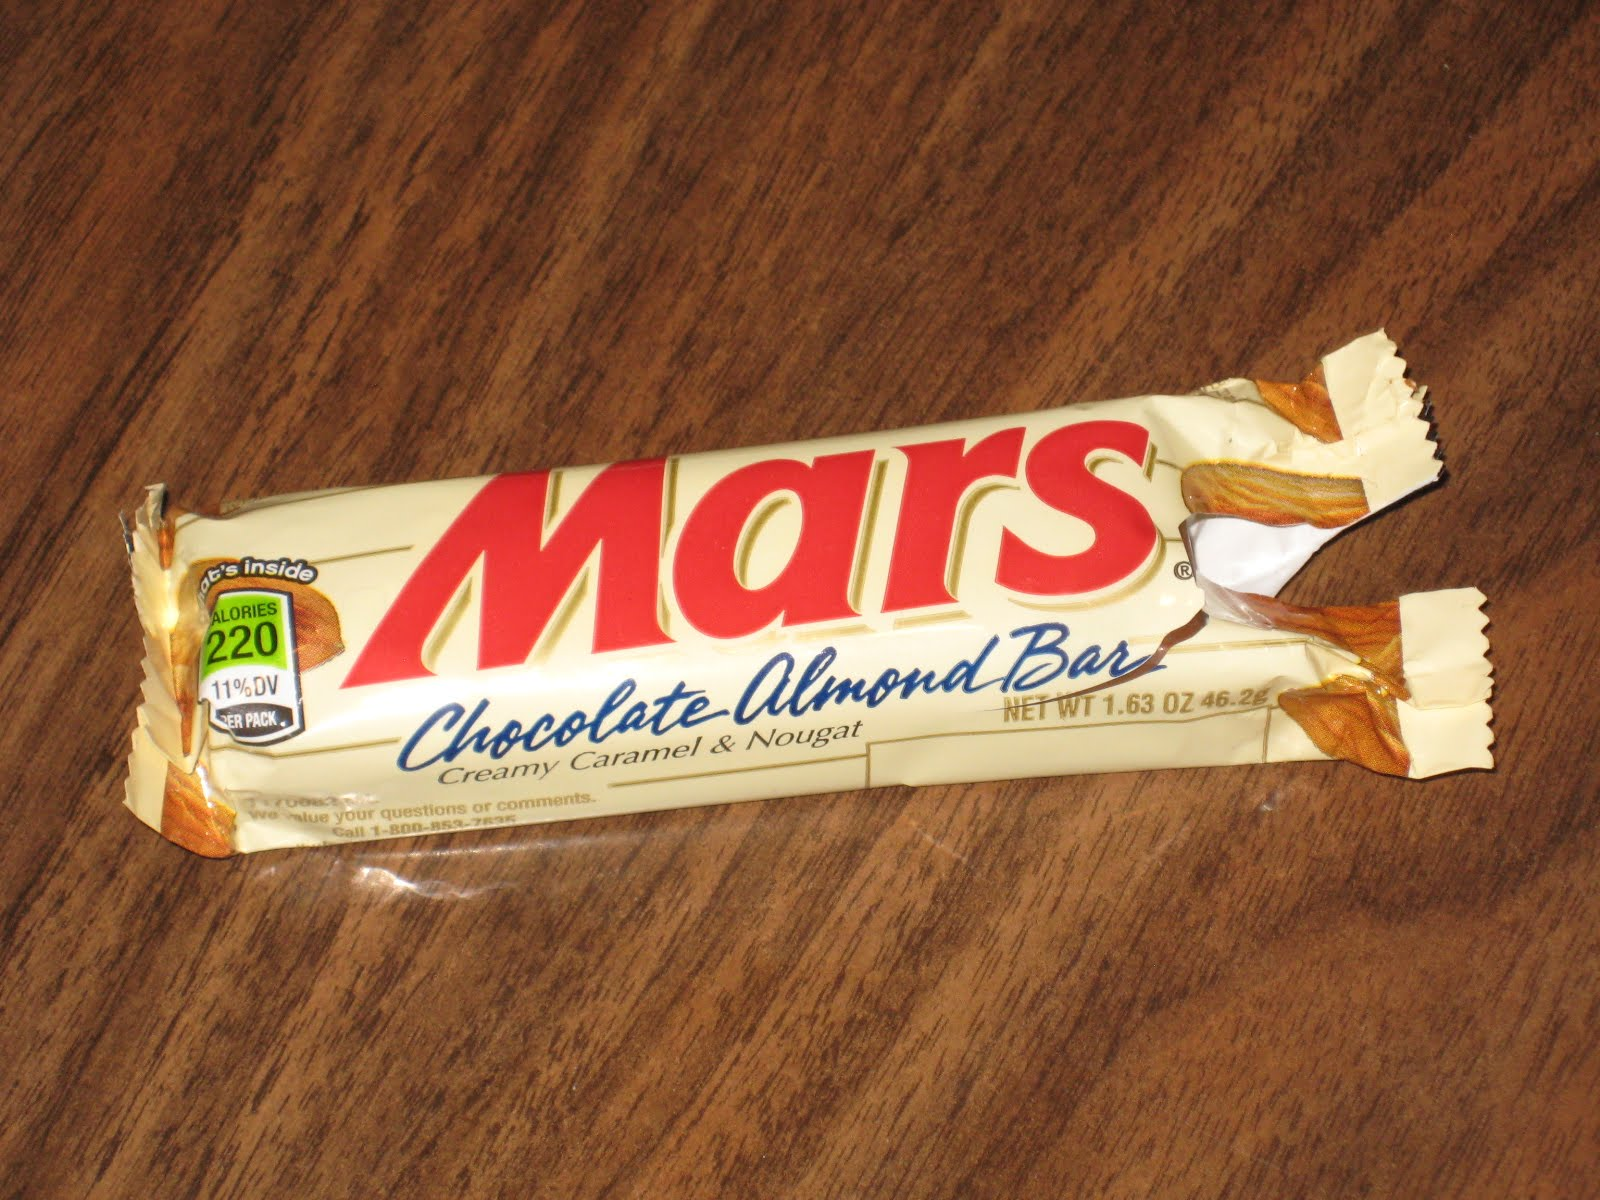 About Mars, Incorporated. Mars makes chocolates, snacks and other products for Earth's consumers. Mars makes global brands M&M's, Snickers, and the Mars bar.